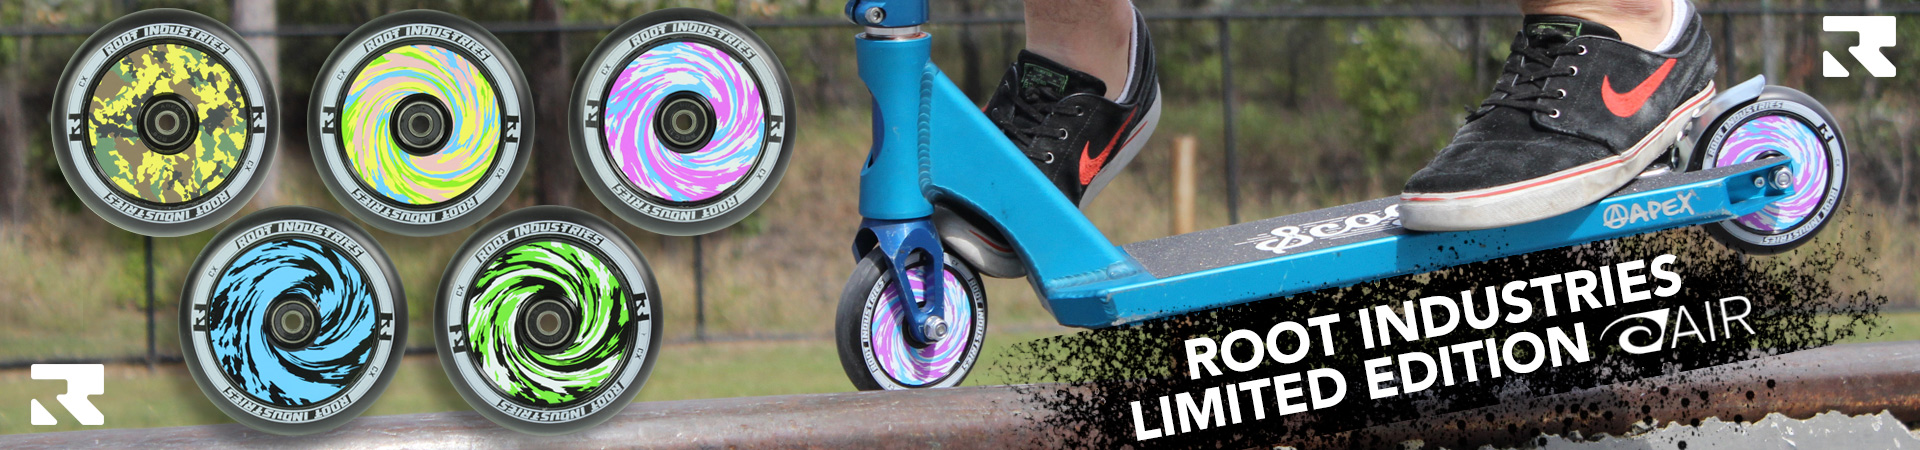 Root Industries Limited Edition AIR wheels   110 or 120mm